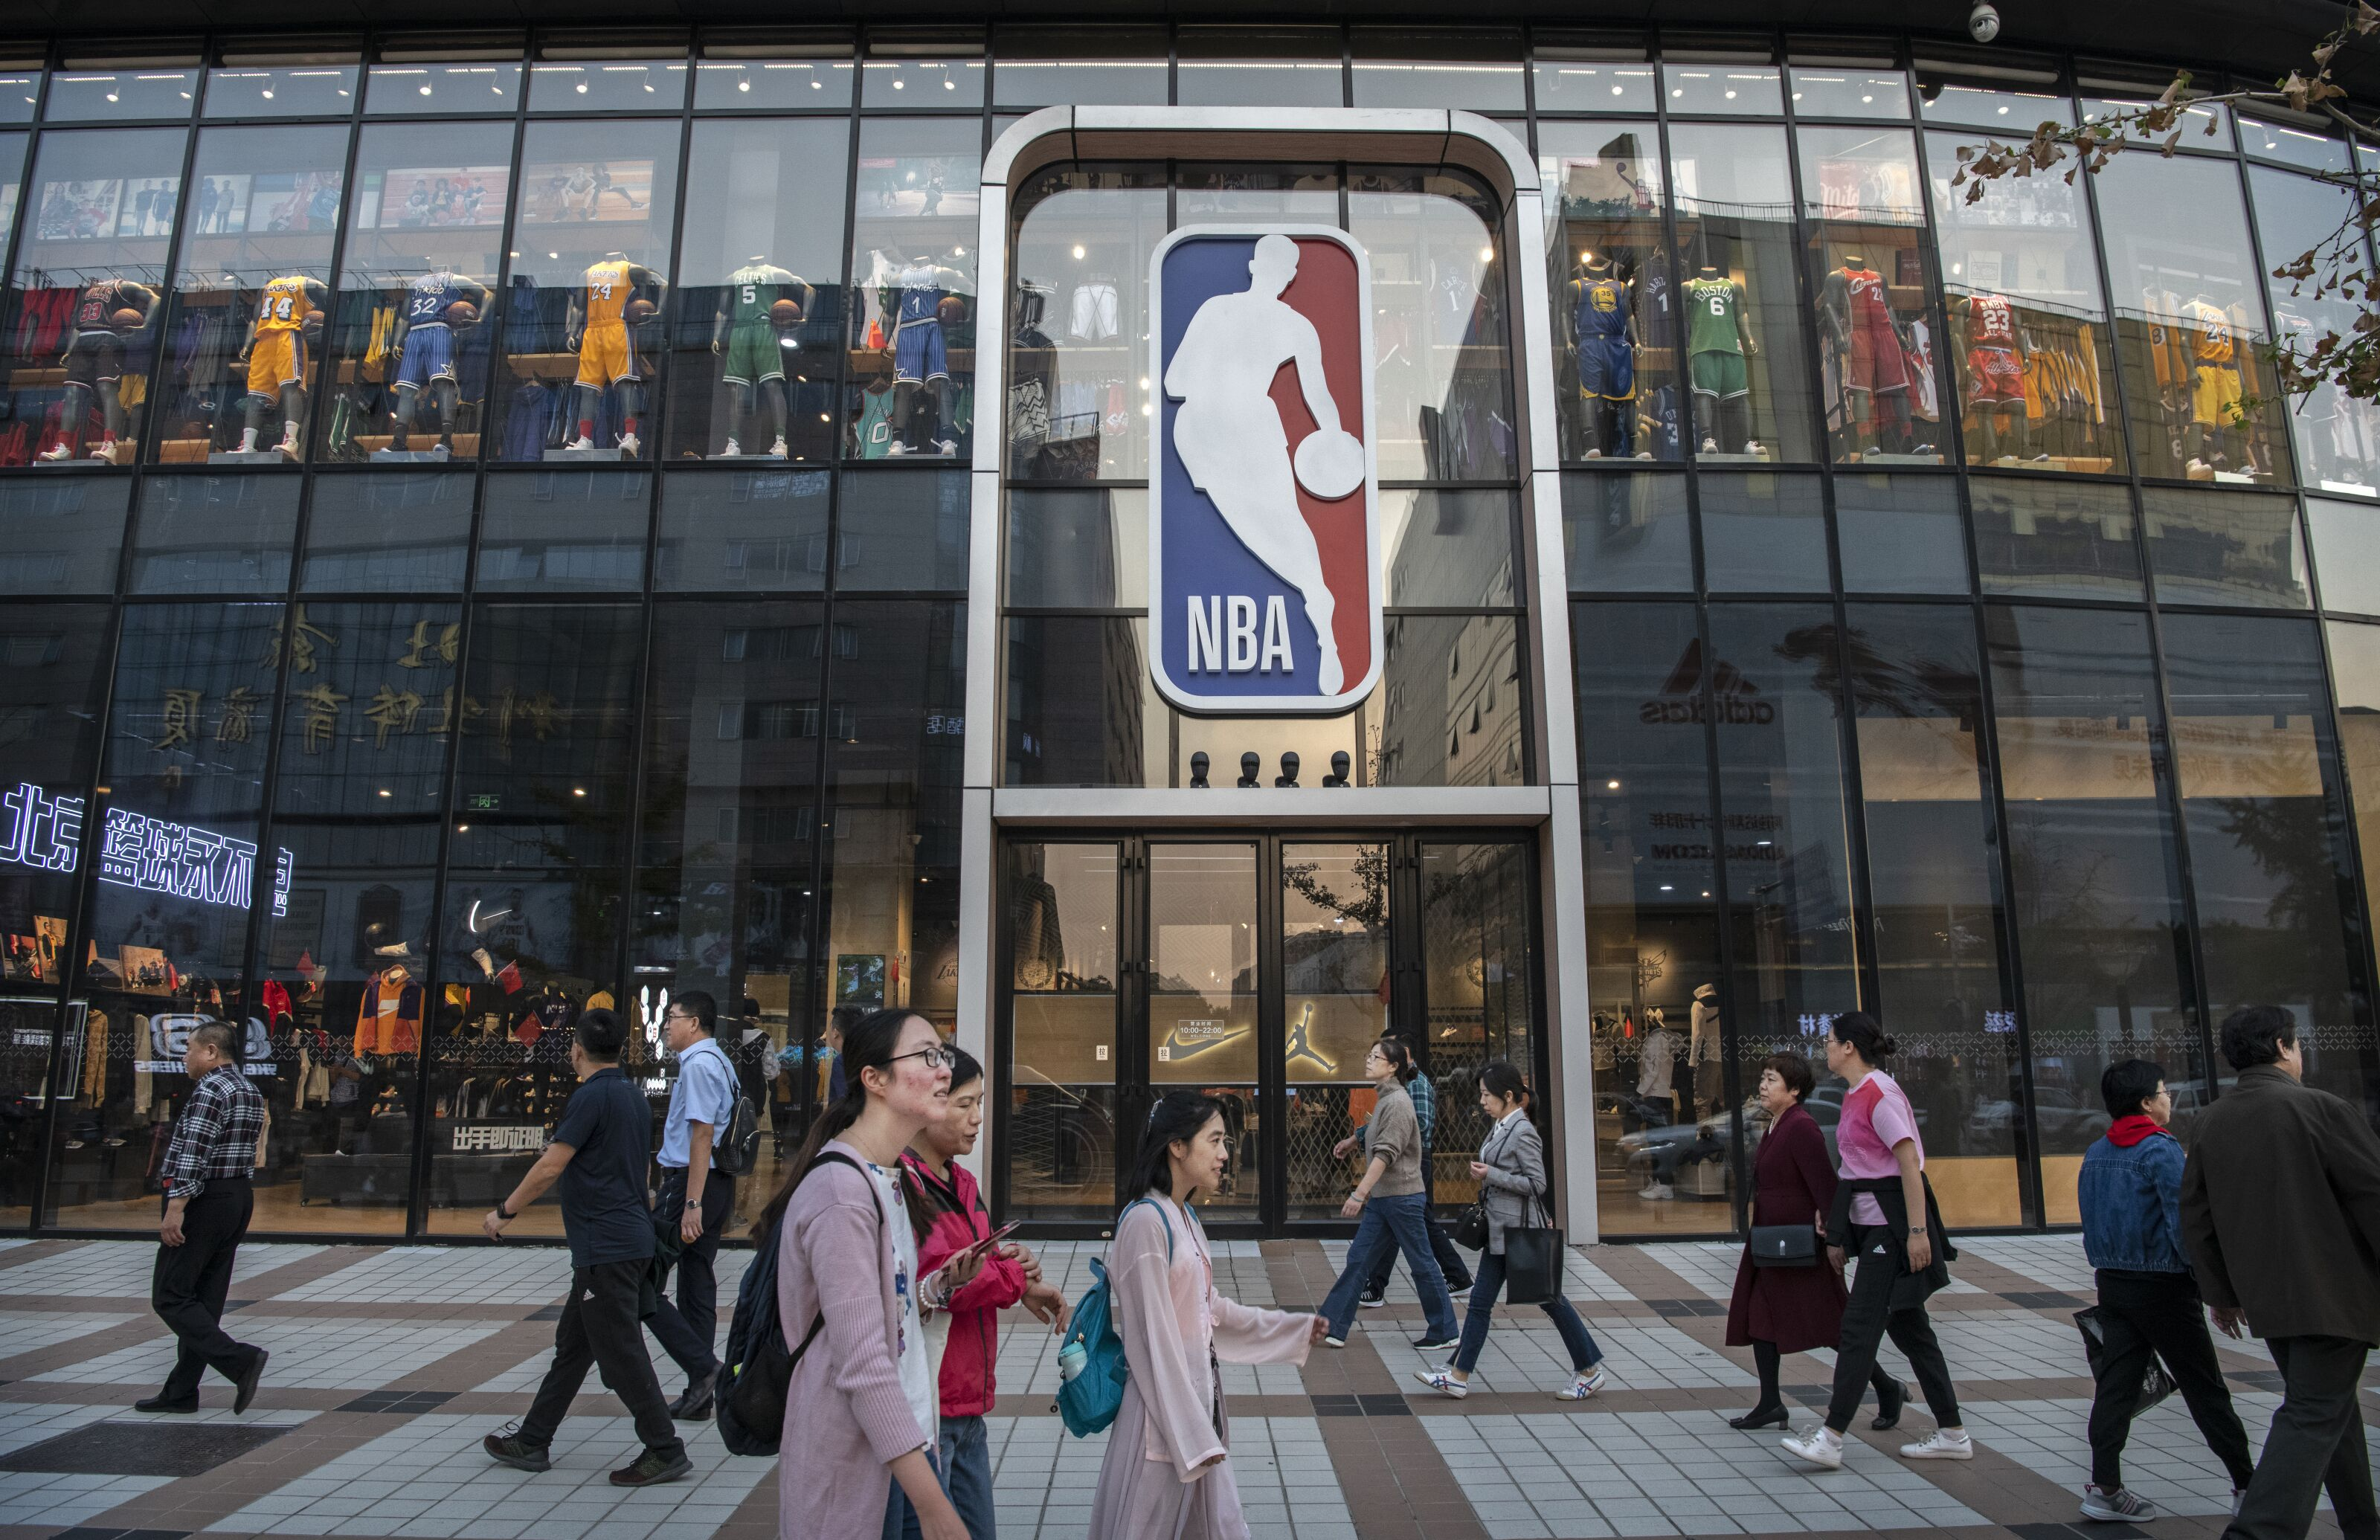 Could the China situation affect future NBA salary cap levels?